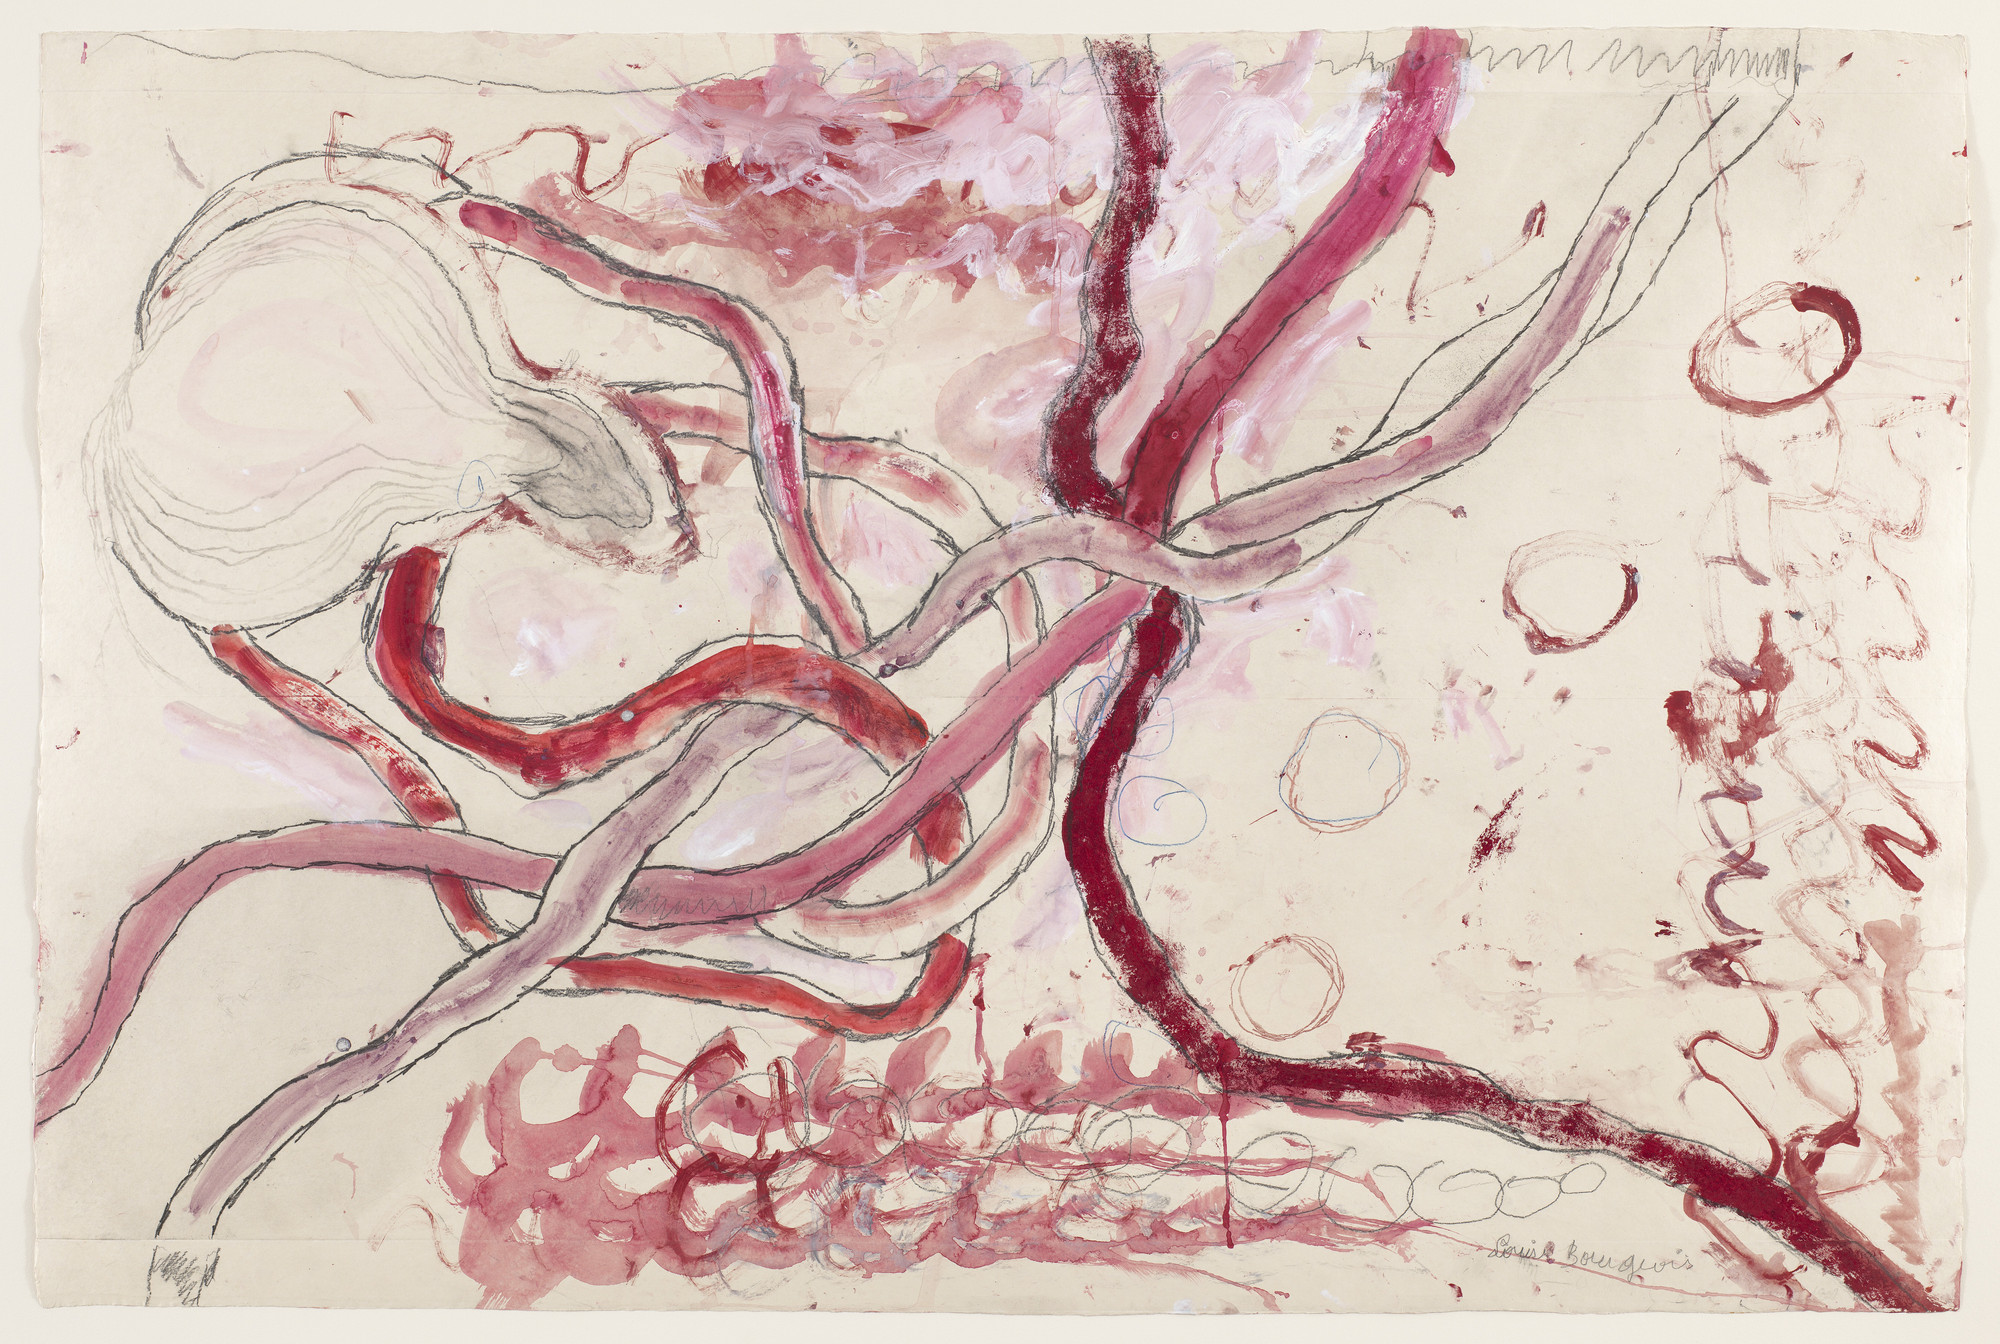 Louise Bourgeois. Untitled, no. 13 of 14, from À l'Infini (set 1). 2008